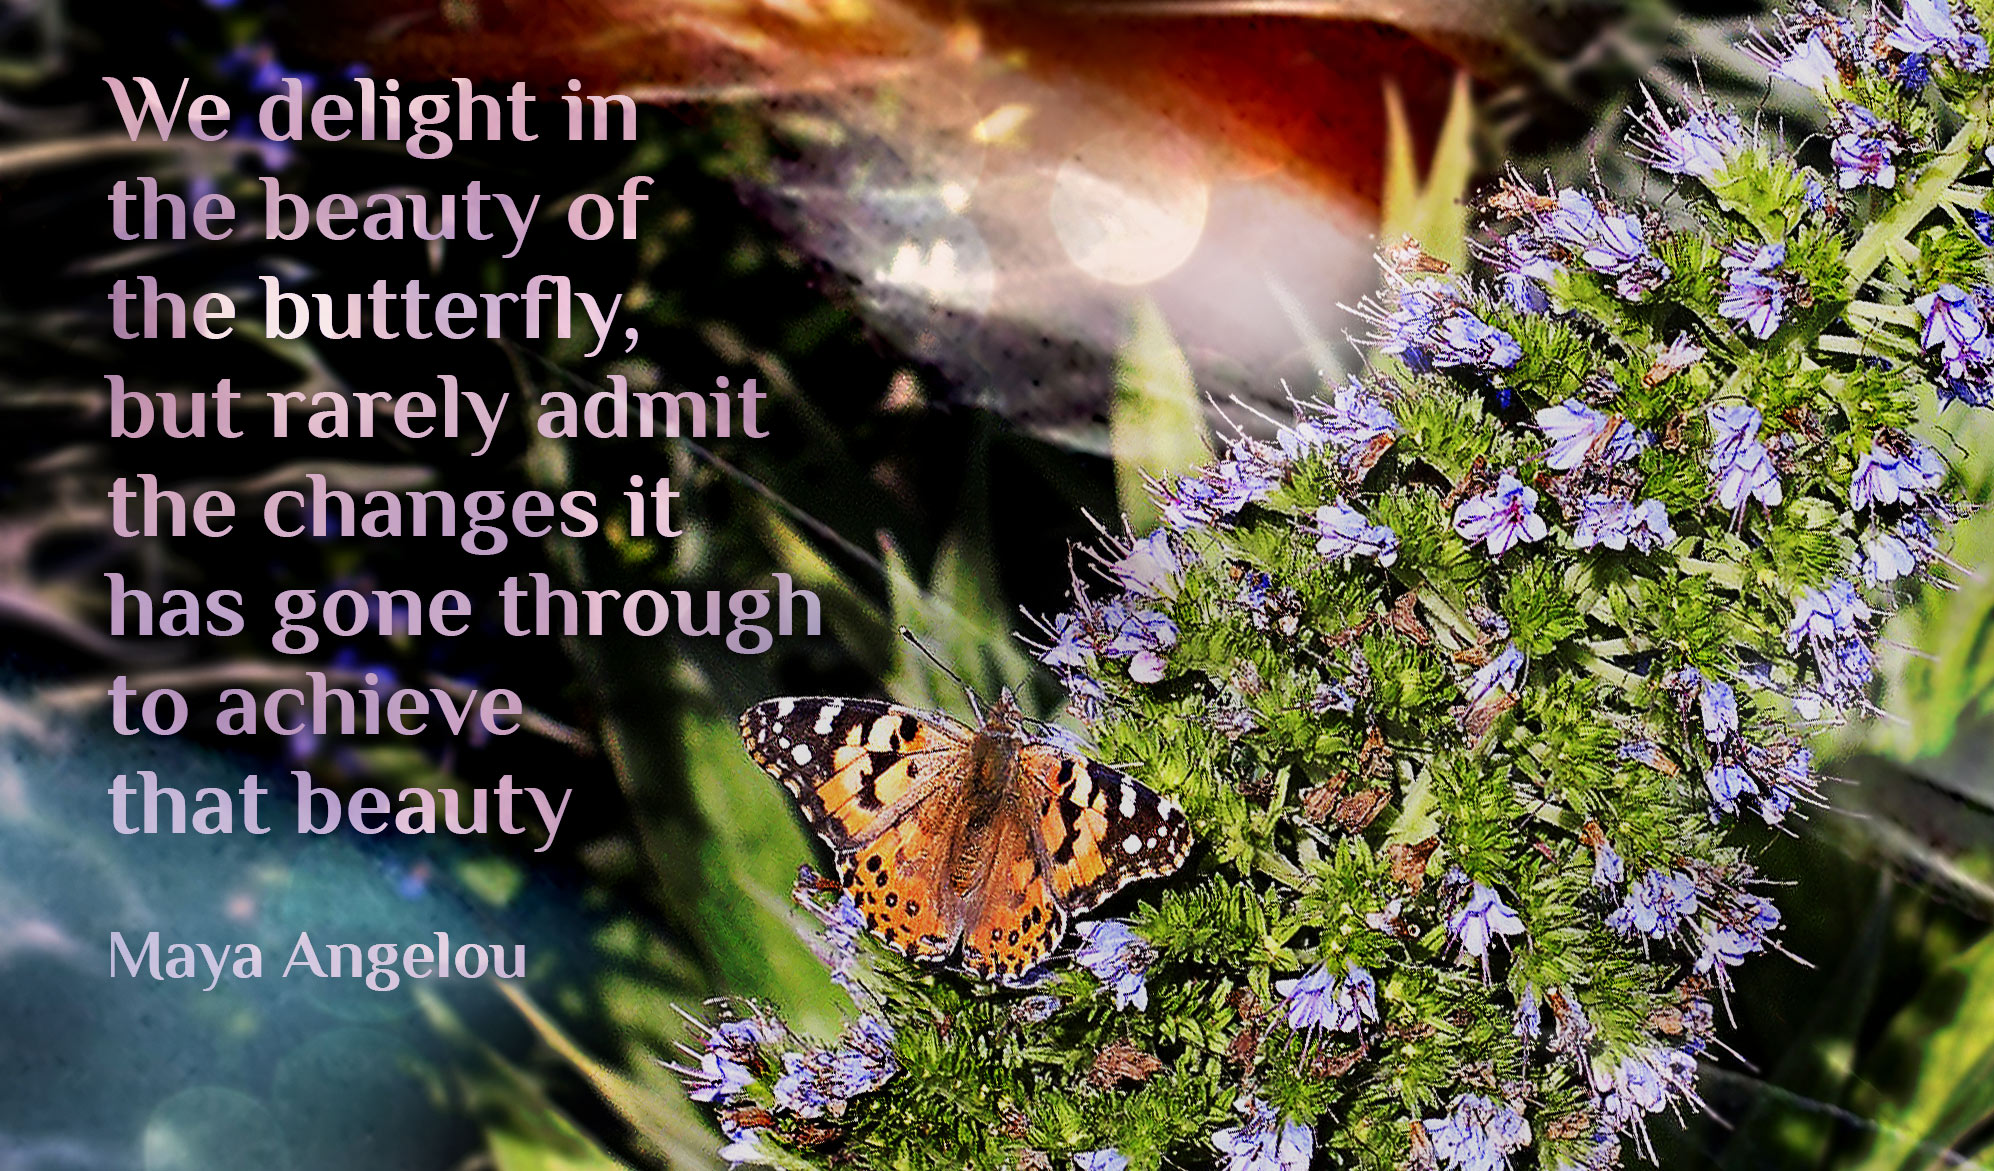 daily inspirational quote image: an orange butterfly on a Pride Of Madeira plant in bloom